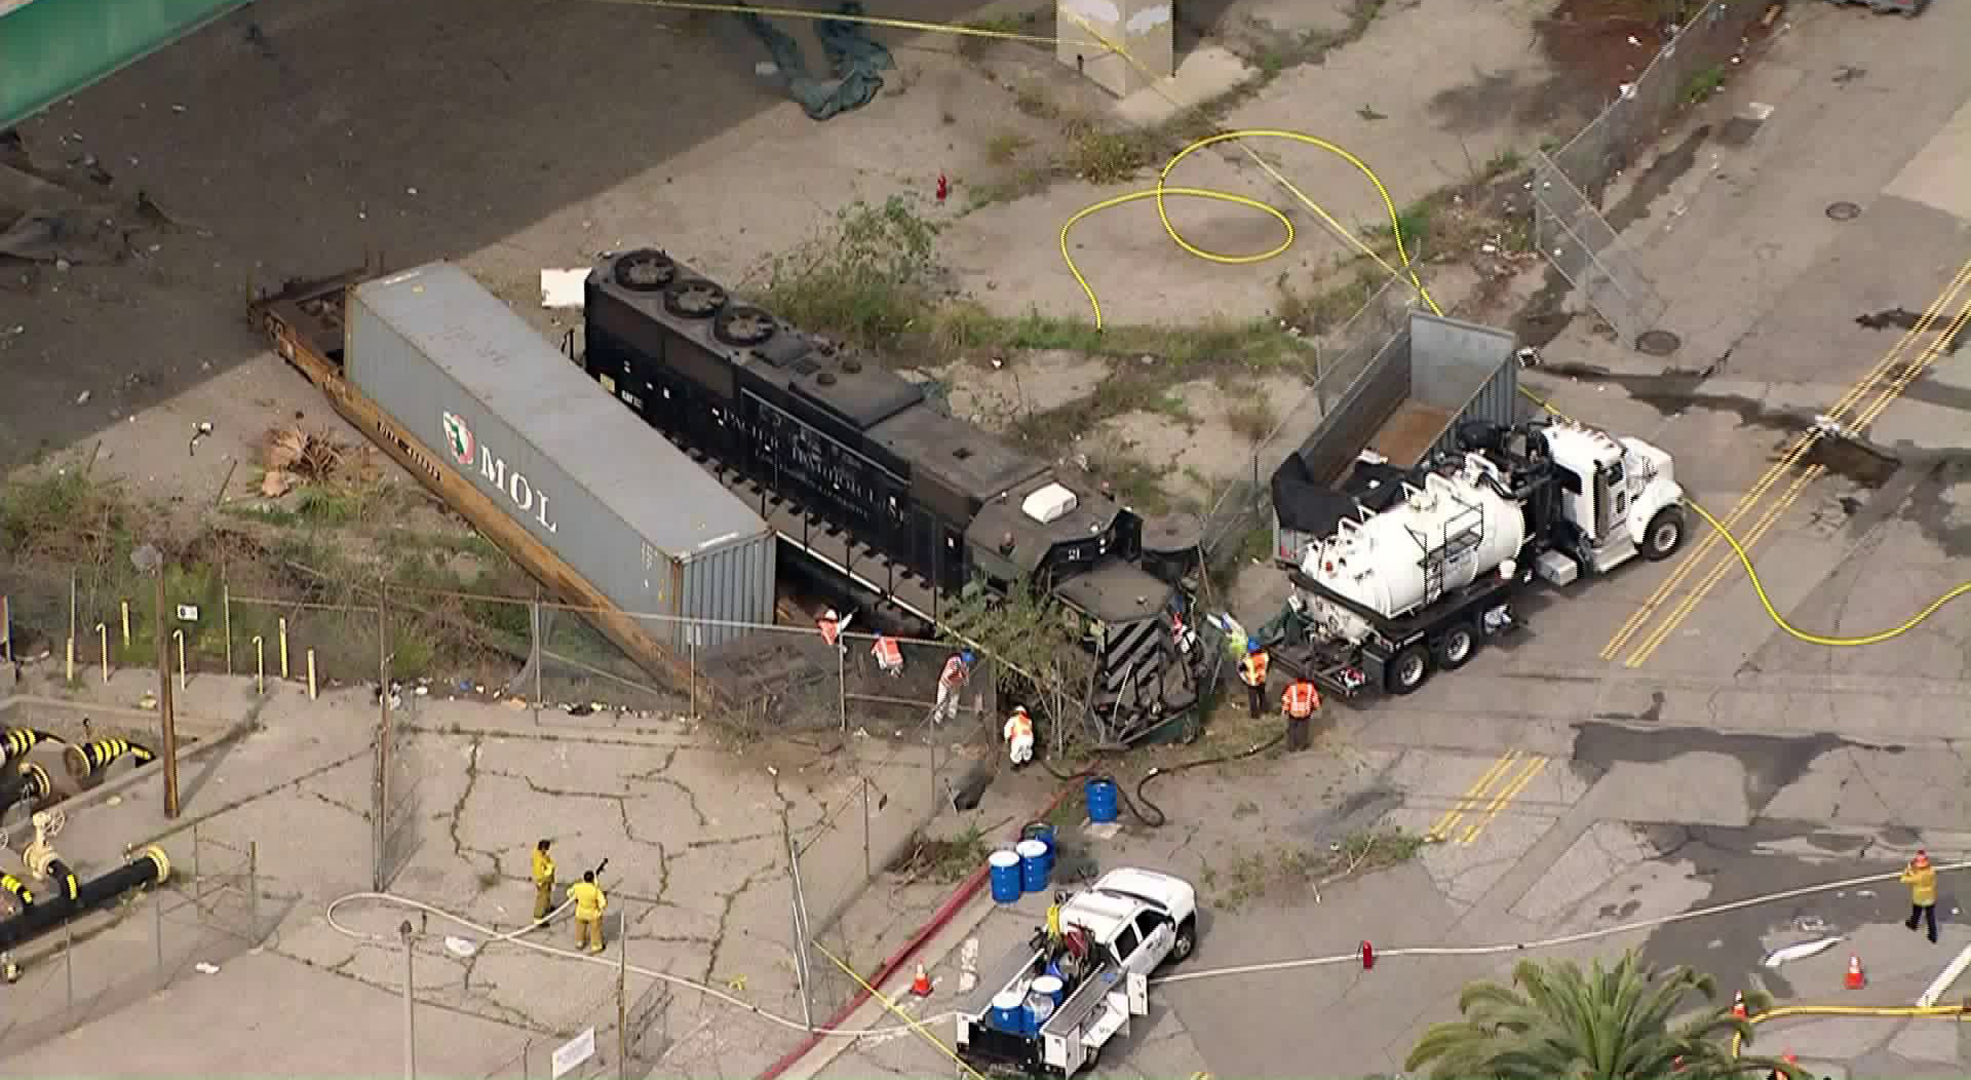 The scene of an allegedly intentional train derailment at the Port of Los Angeles, near where the USNS Mercy is docked, is seen on March 31, 2020. (KTLA)